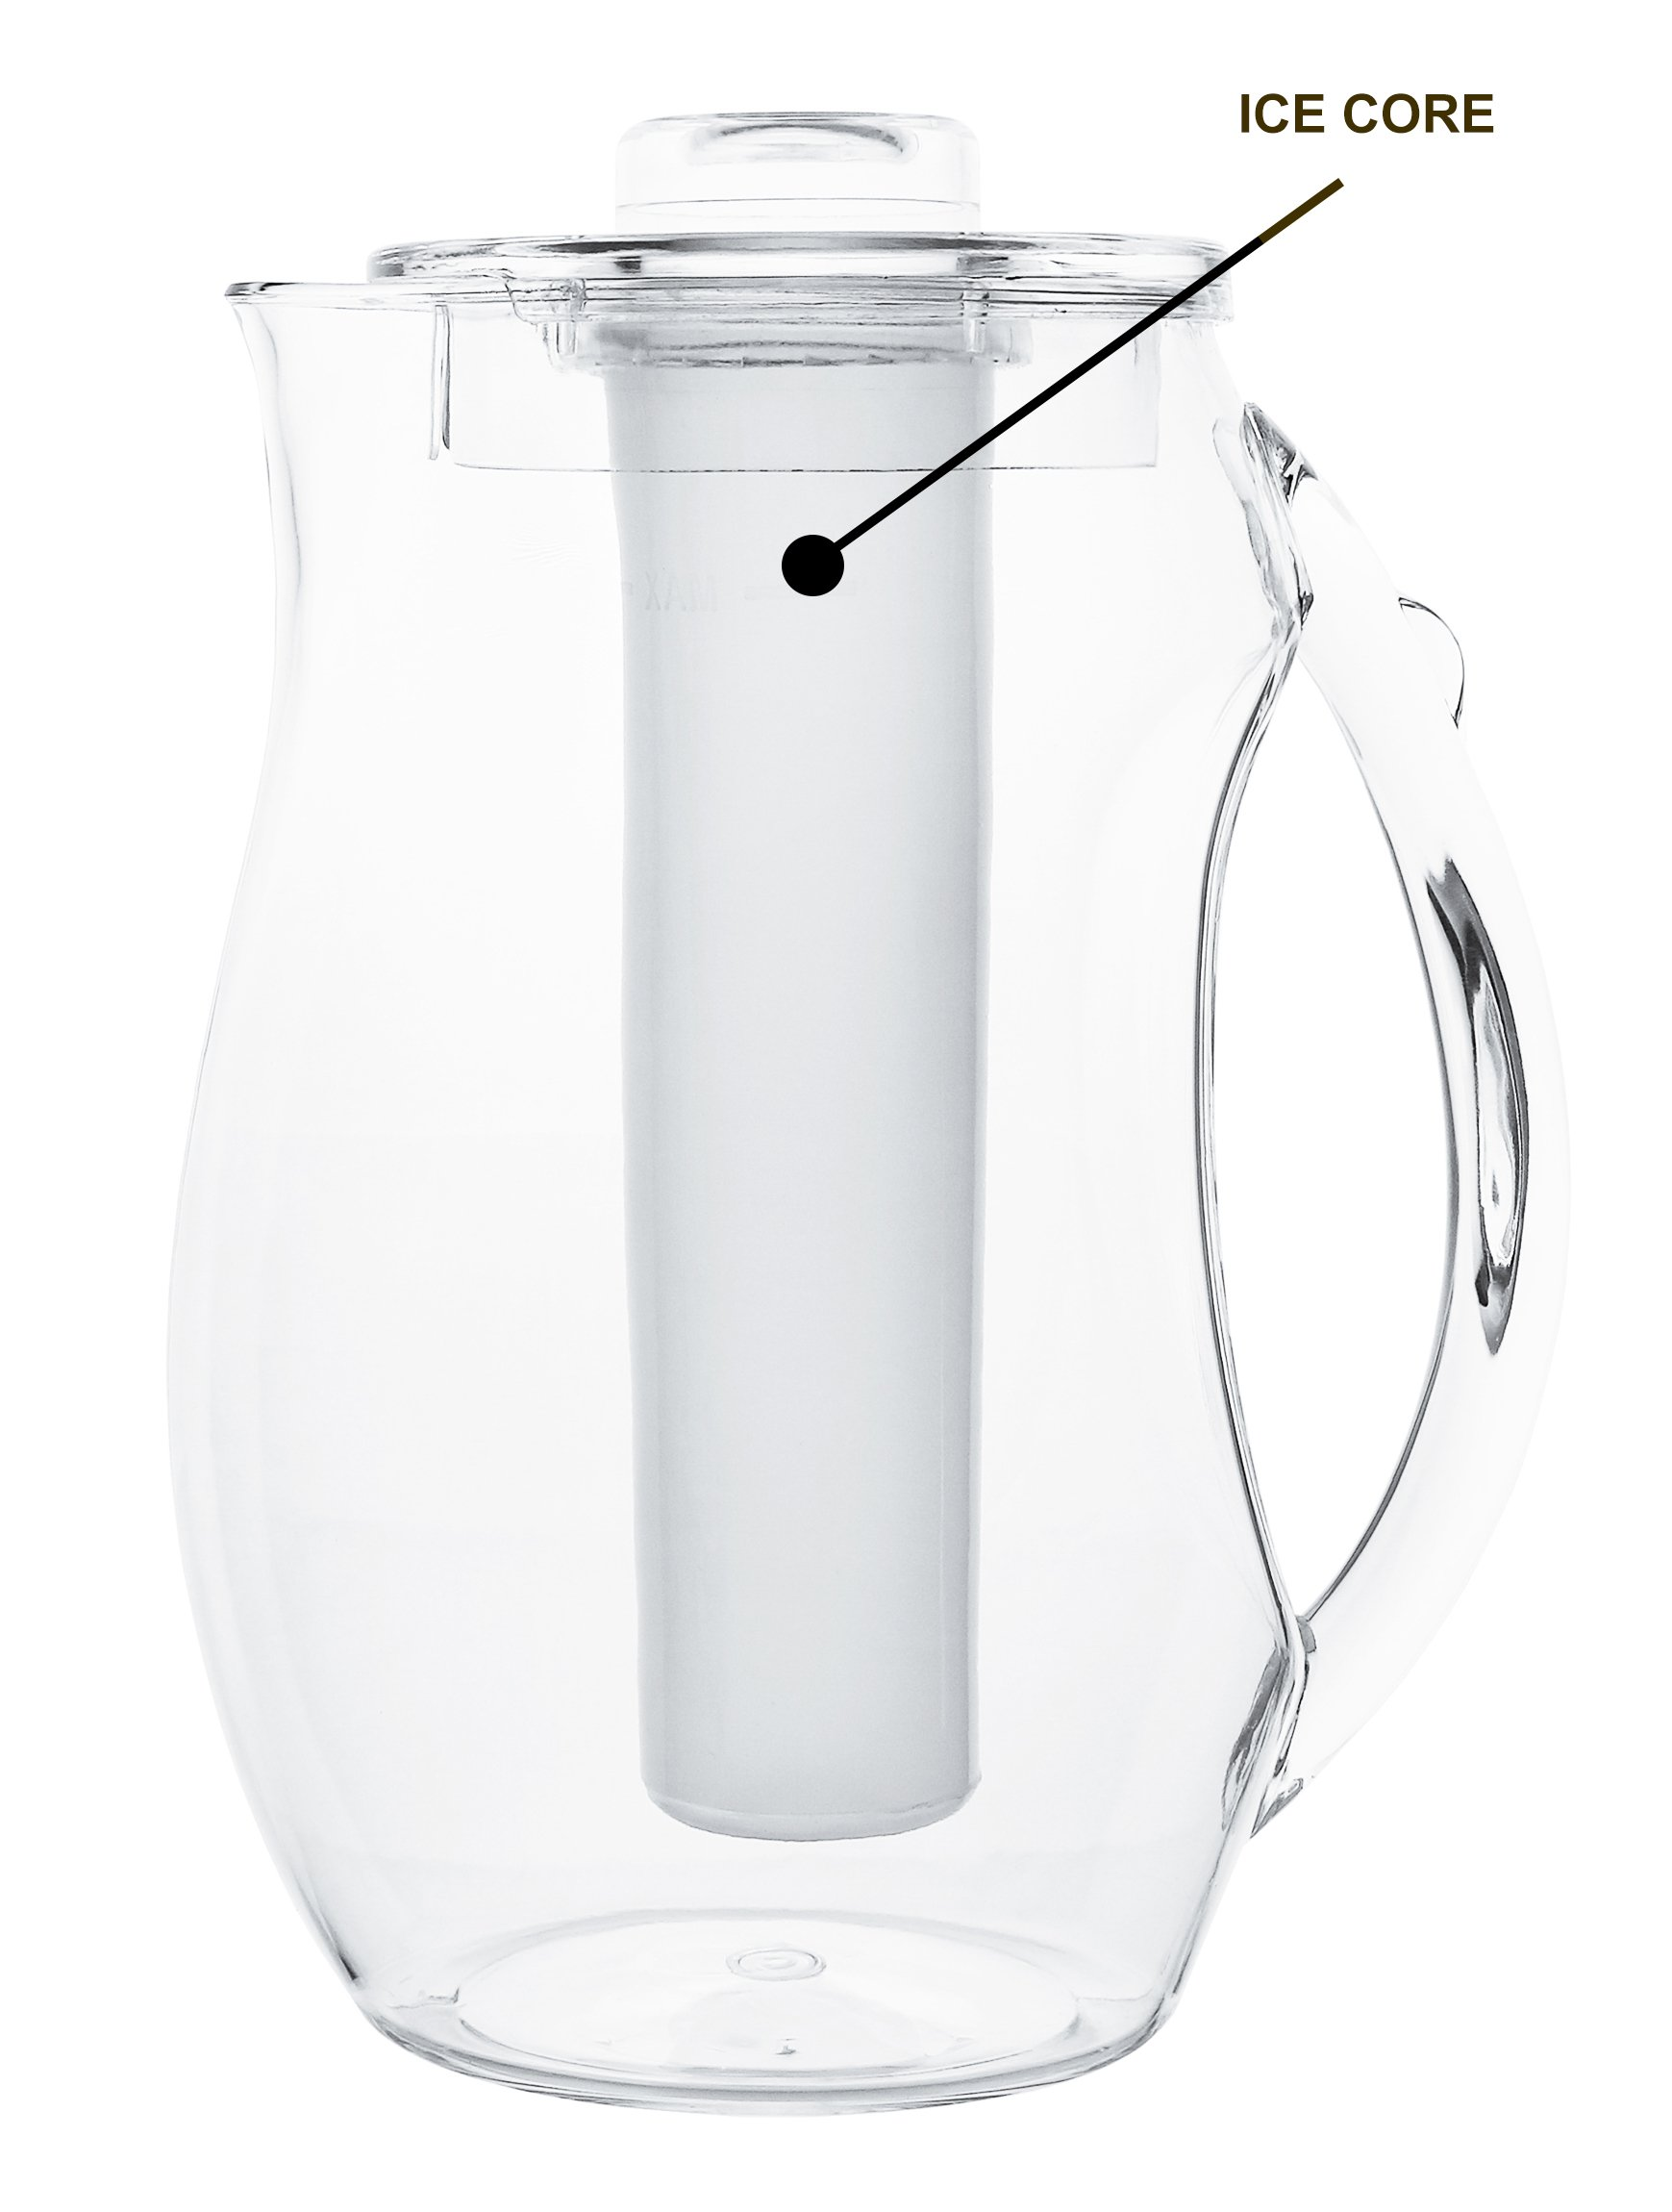 Estilo Acrylic Fruit Infusion Pitcher with Ice Core 2 Liter (72 oz/2.1 quart) by Estilo (Image #2)